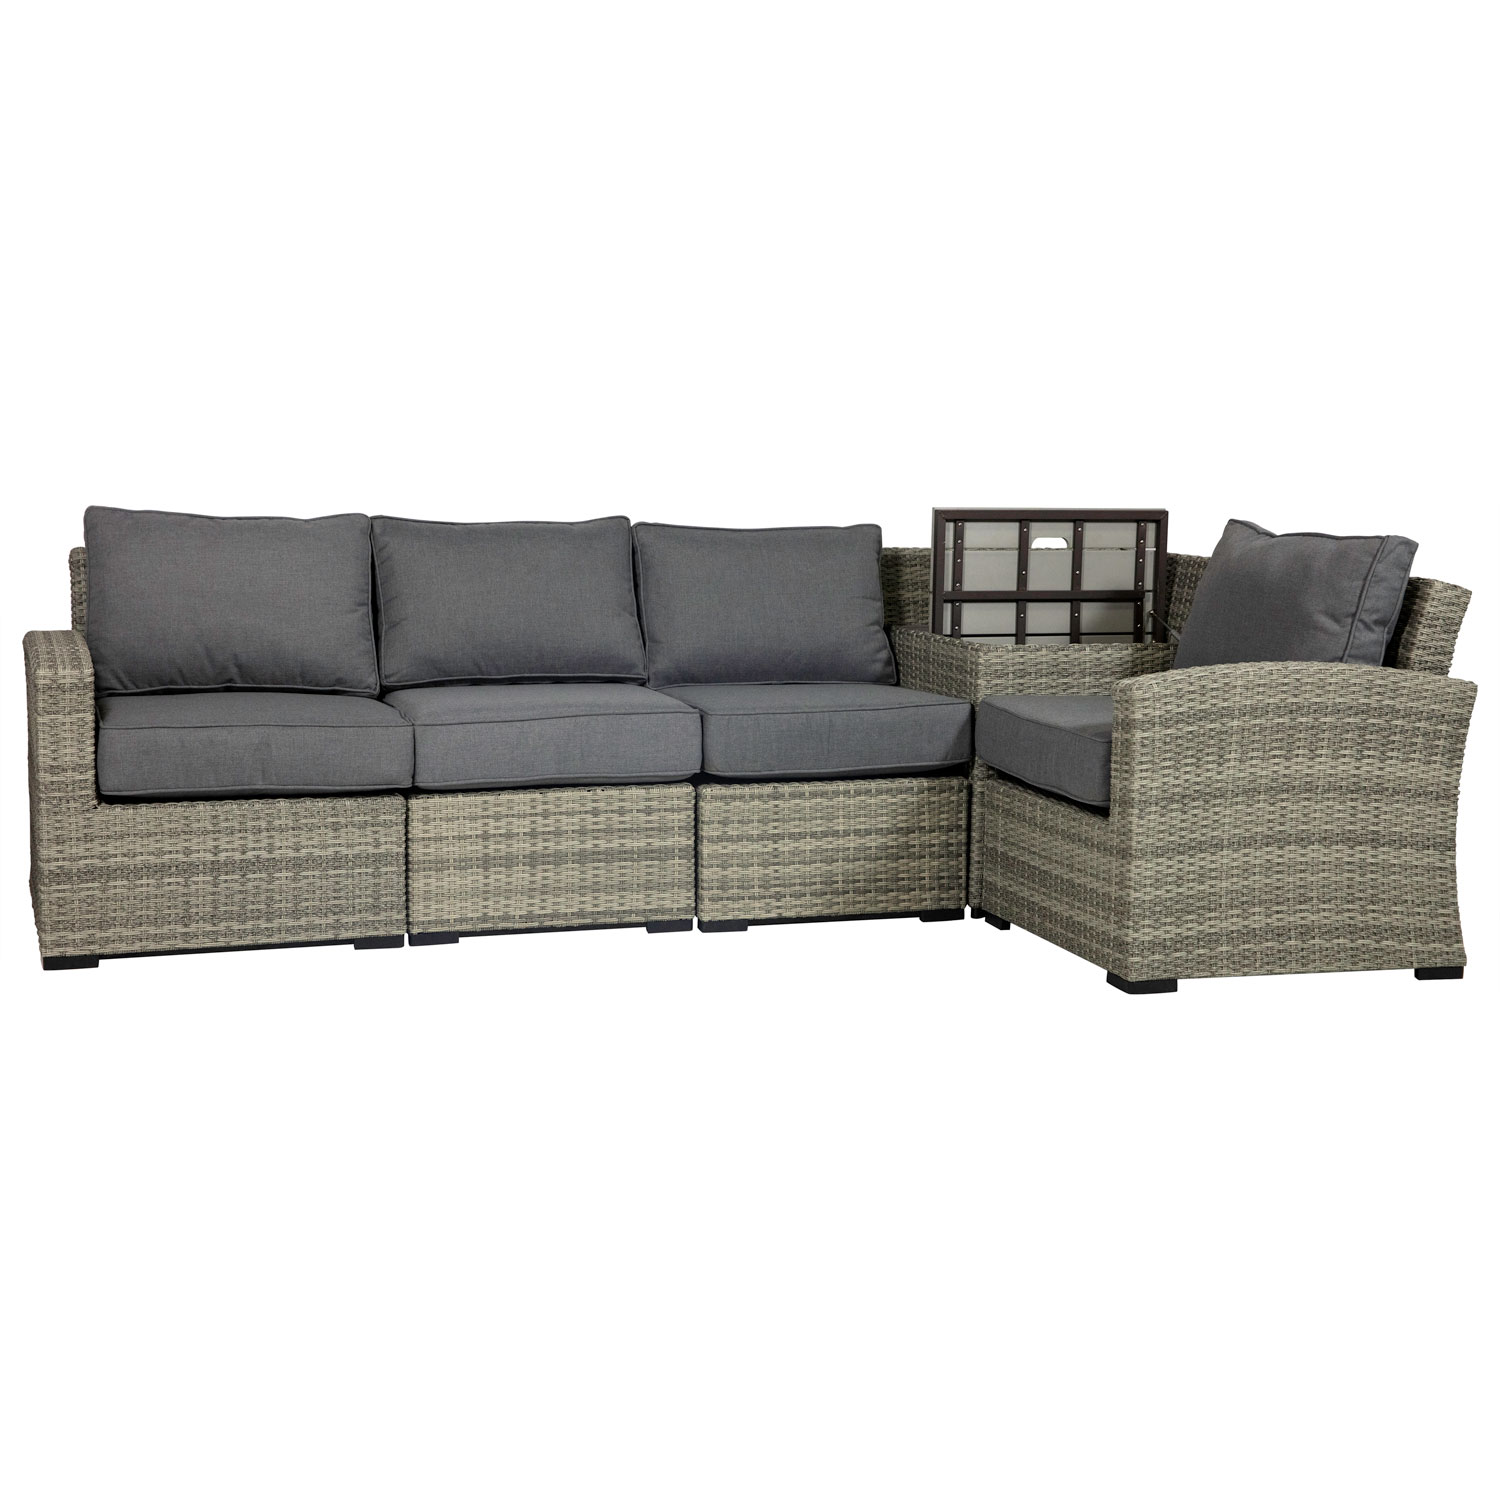 Sofa Liquidation Montreal Furniture Home Living Room Bedroom Furniture Best Buy Canada